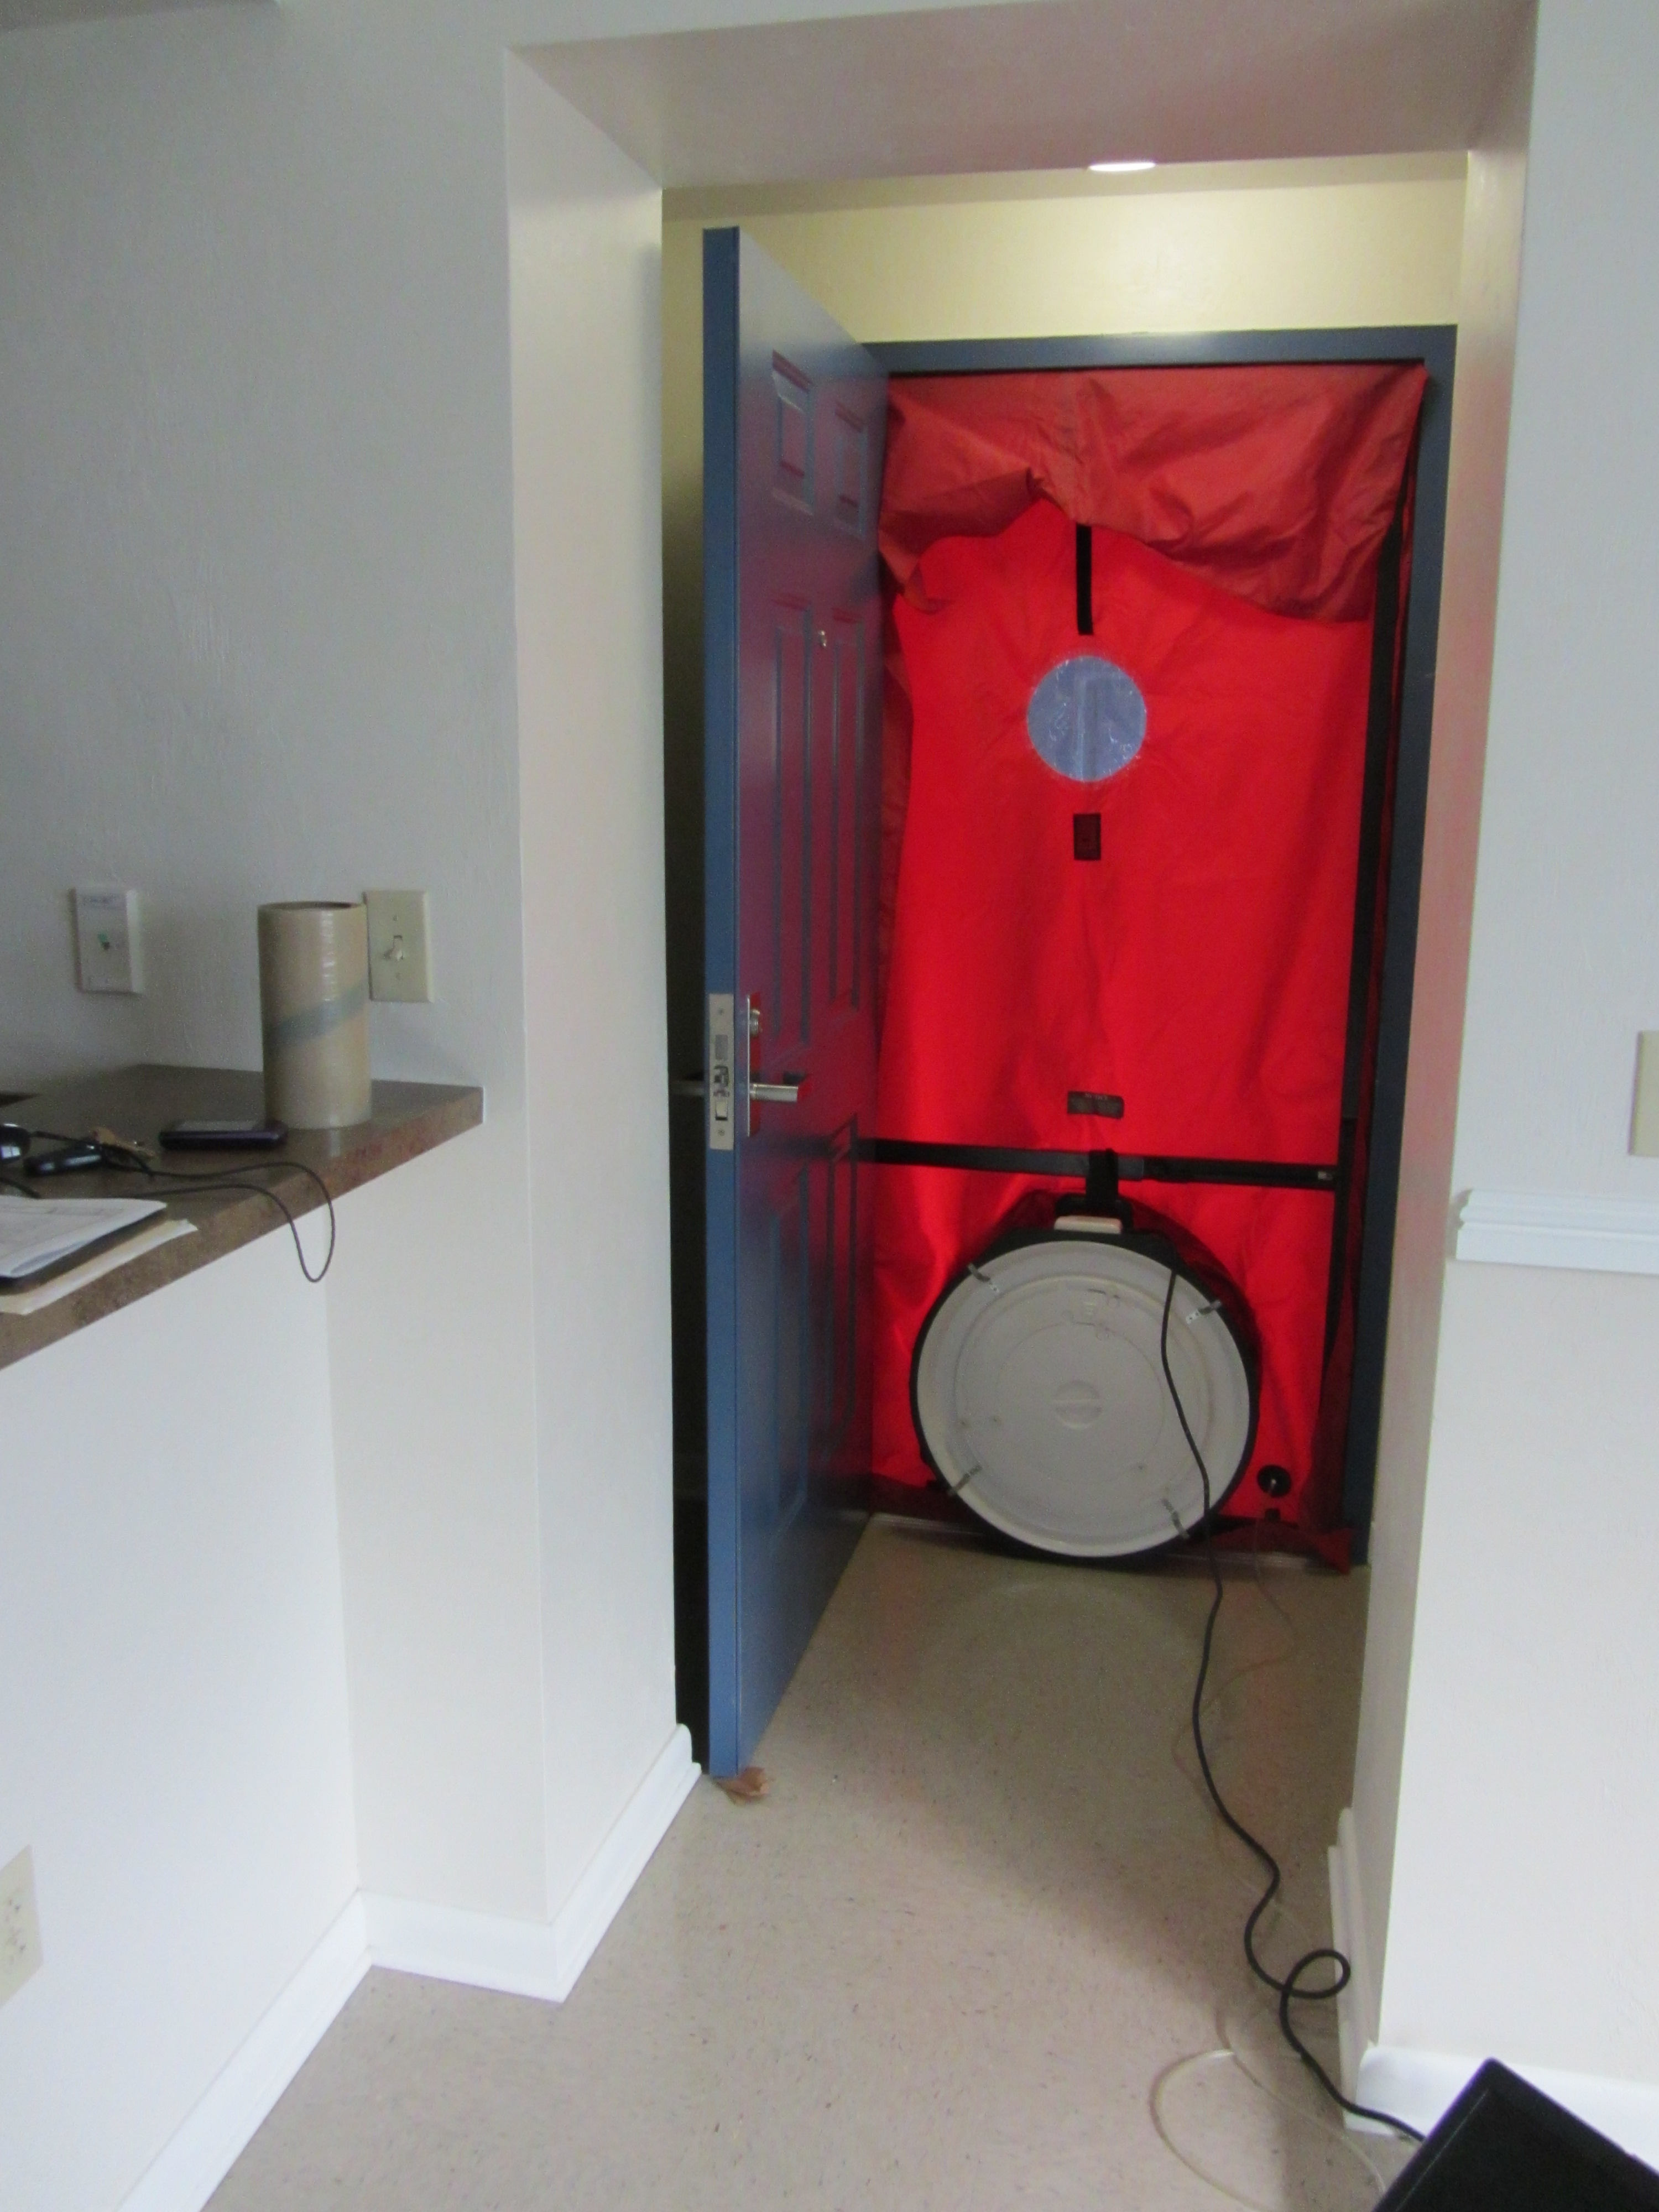 test home a photo door liam his camillus install during ny syracuse in insulation blower explaining contractor finding